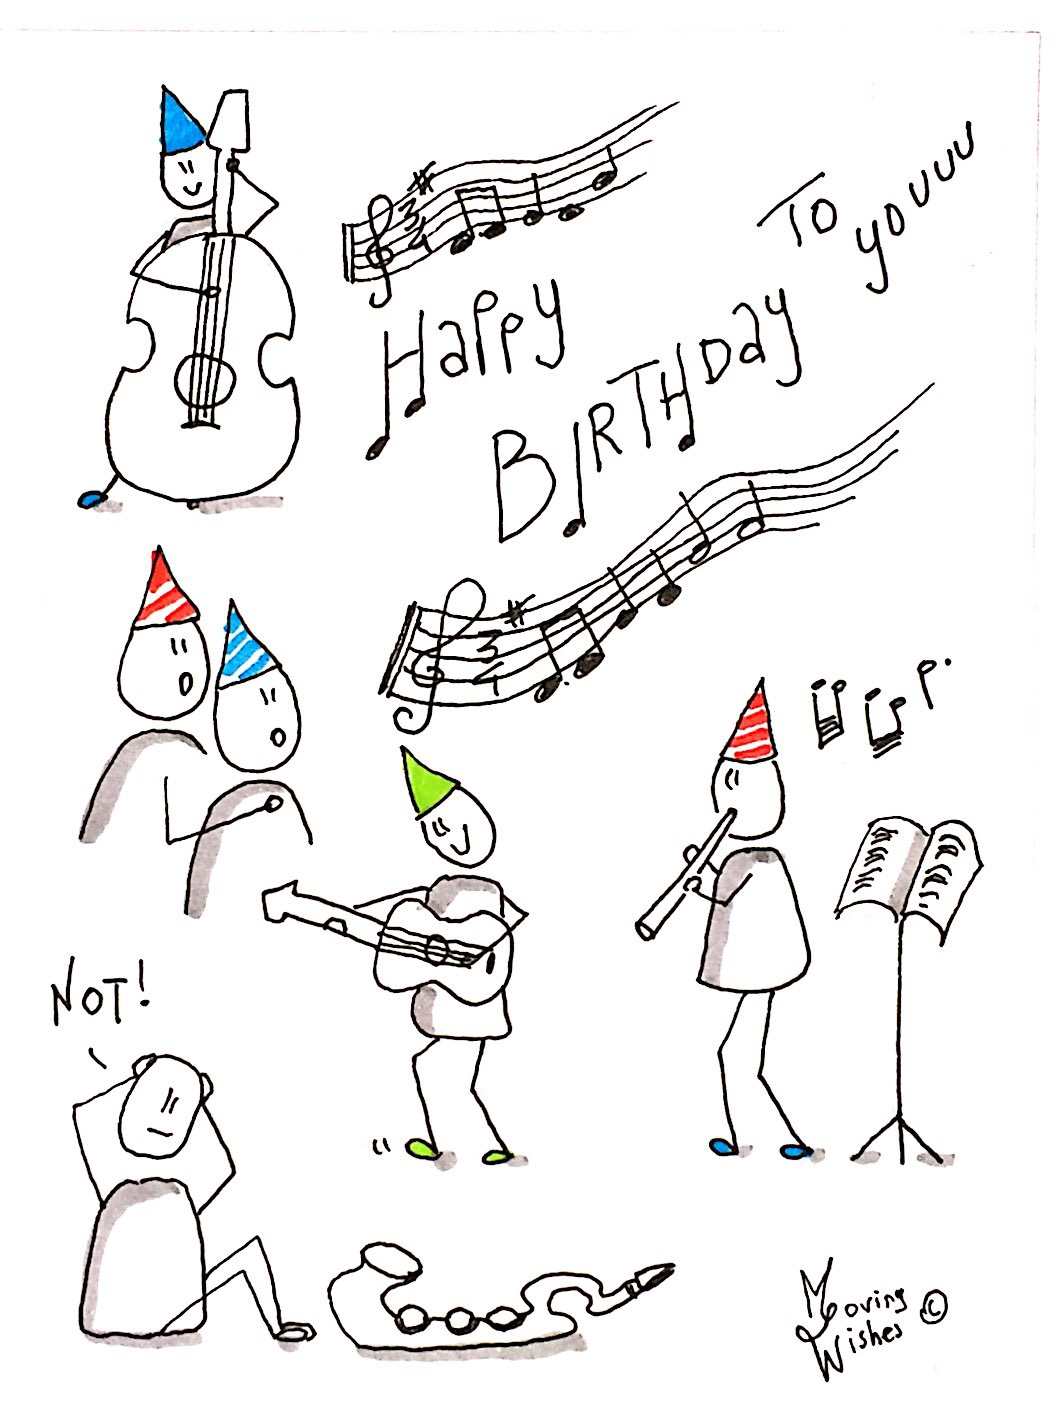 Birthday Card With Musicians